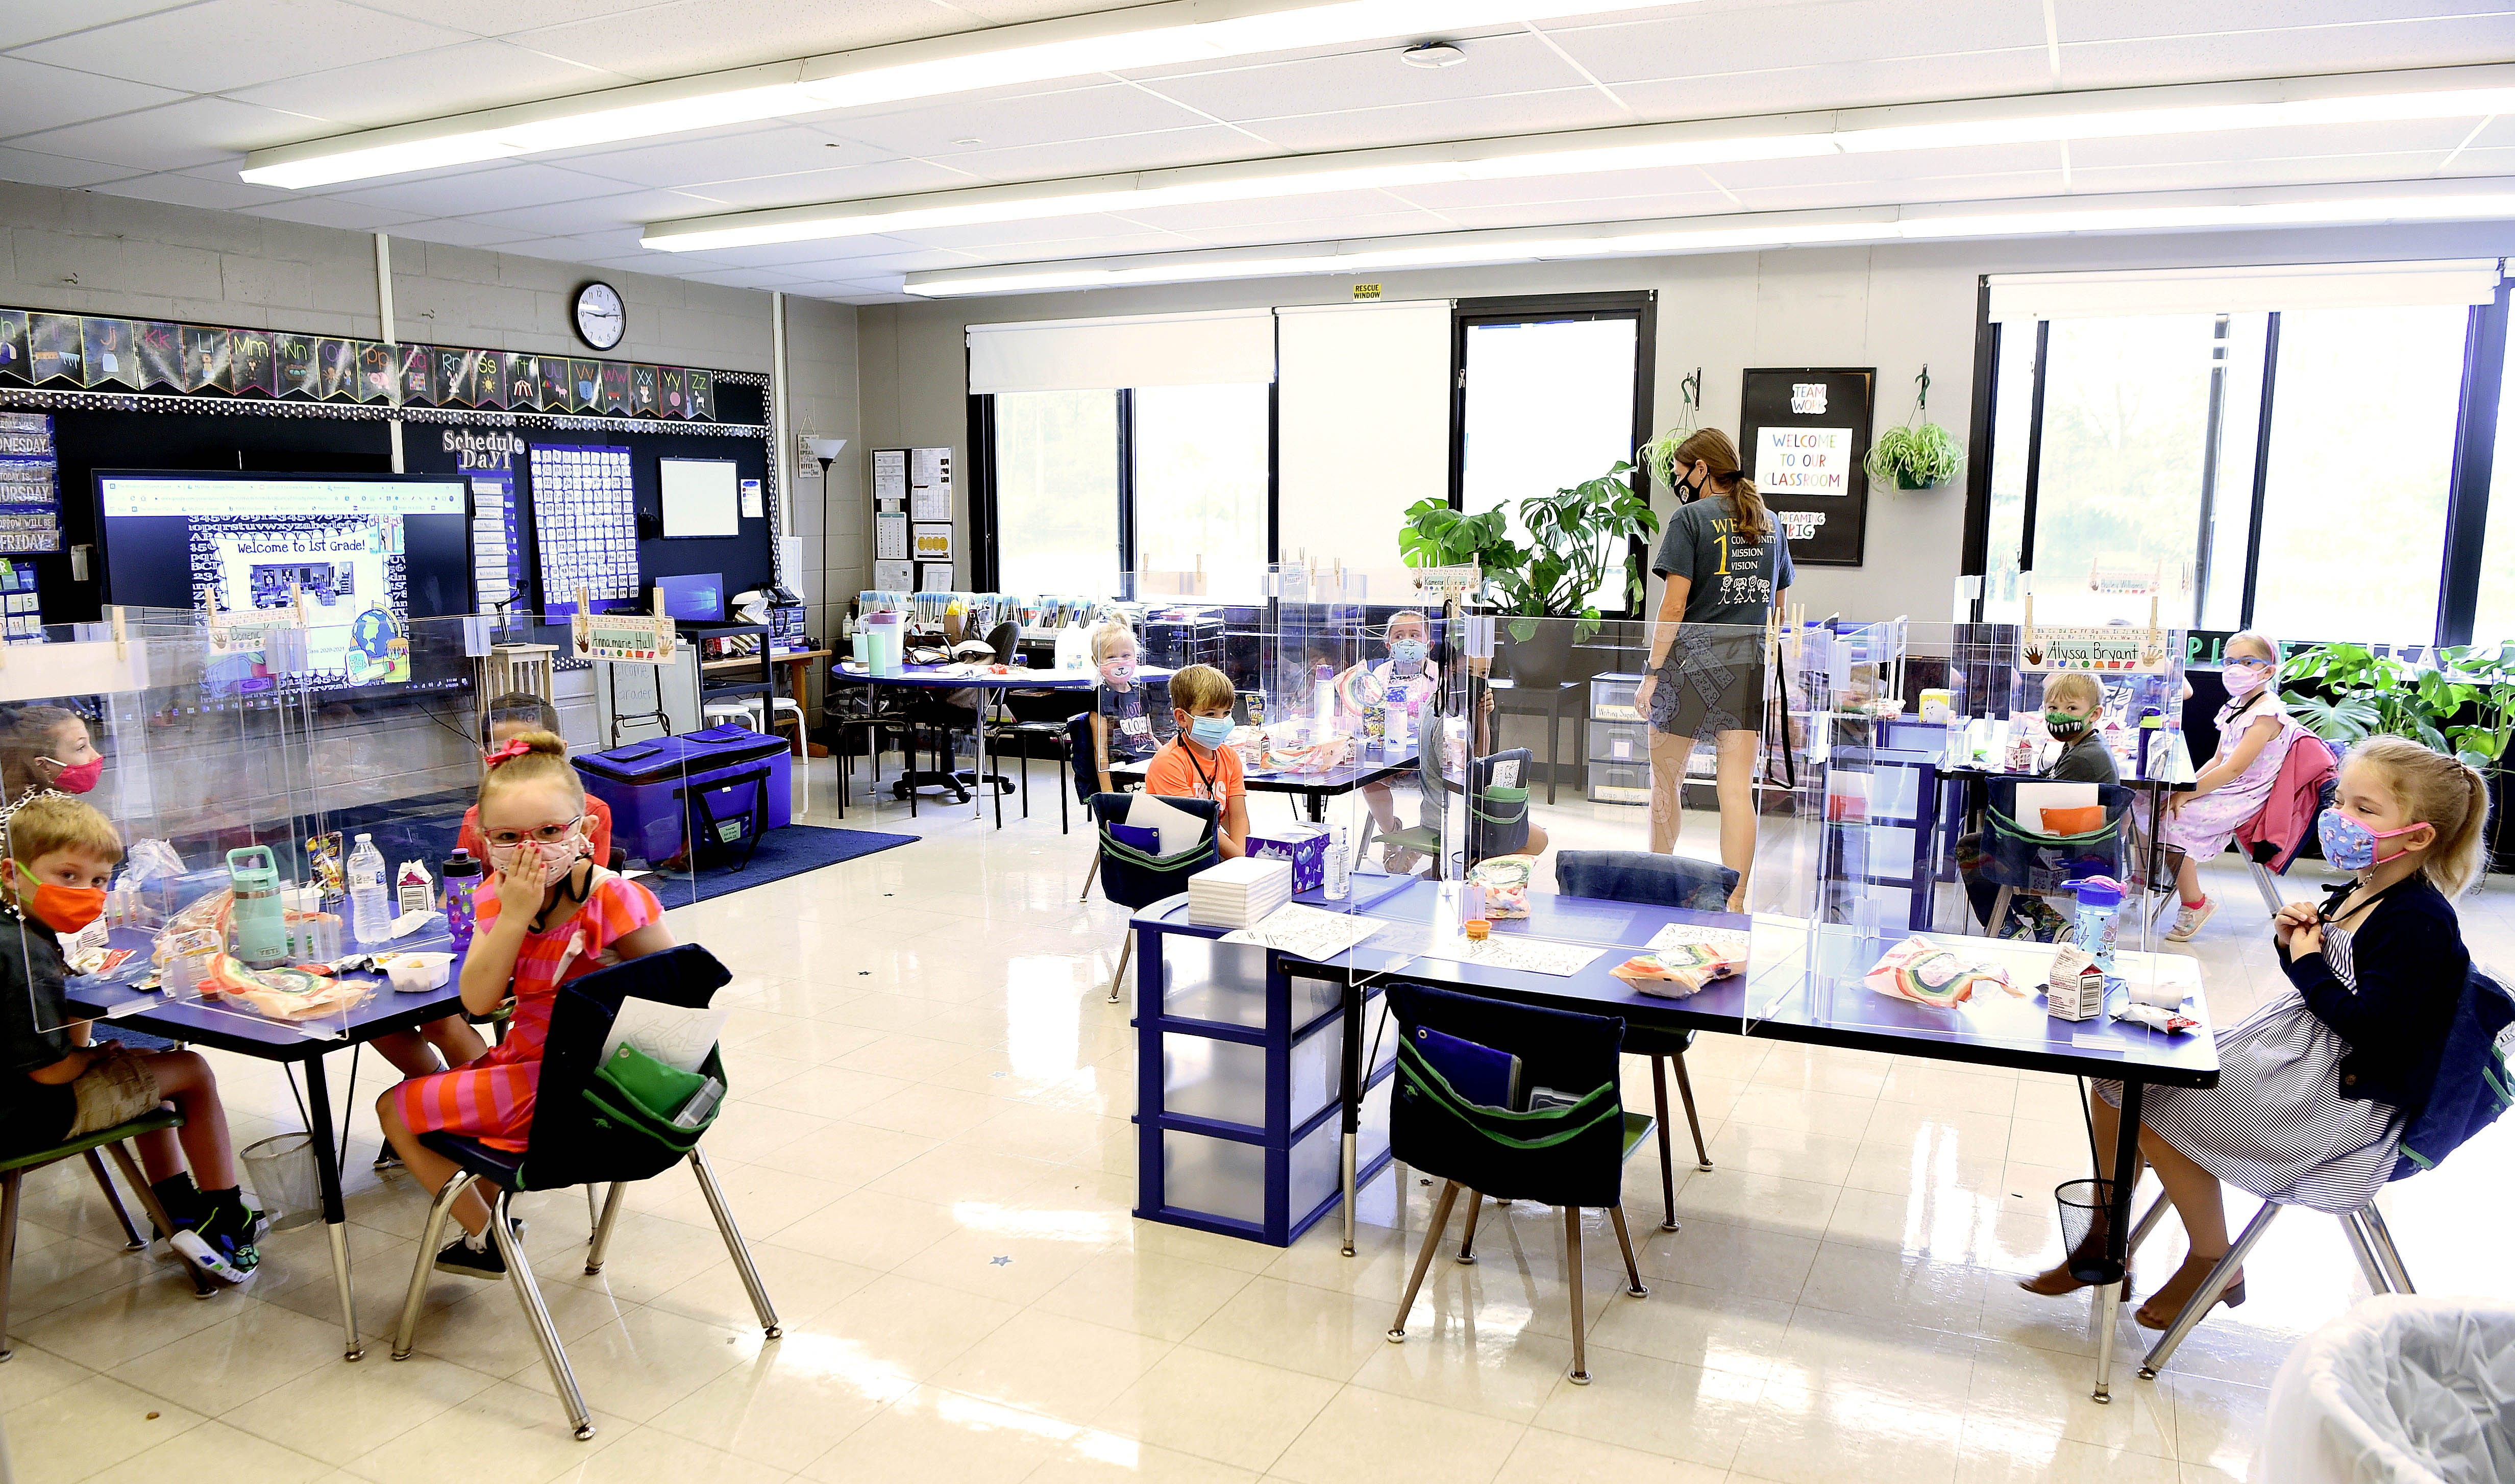 Schools opened in the fall of 2020 like any other year, but pandemic classrooms were unfamiliar to returning students. Here a Windsor first-grade class sits down for breakfast in September wearing masks, at tables spread apart, separated from their classmates by plexiglass partitions.